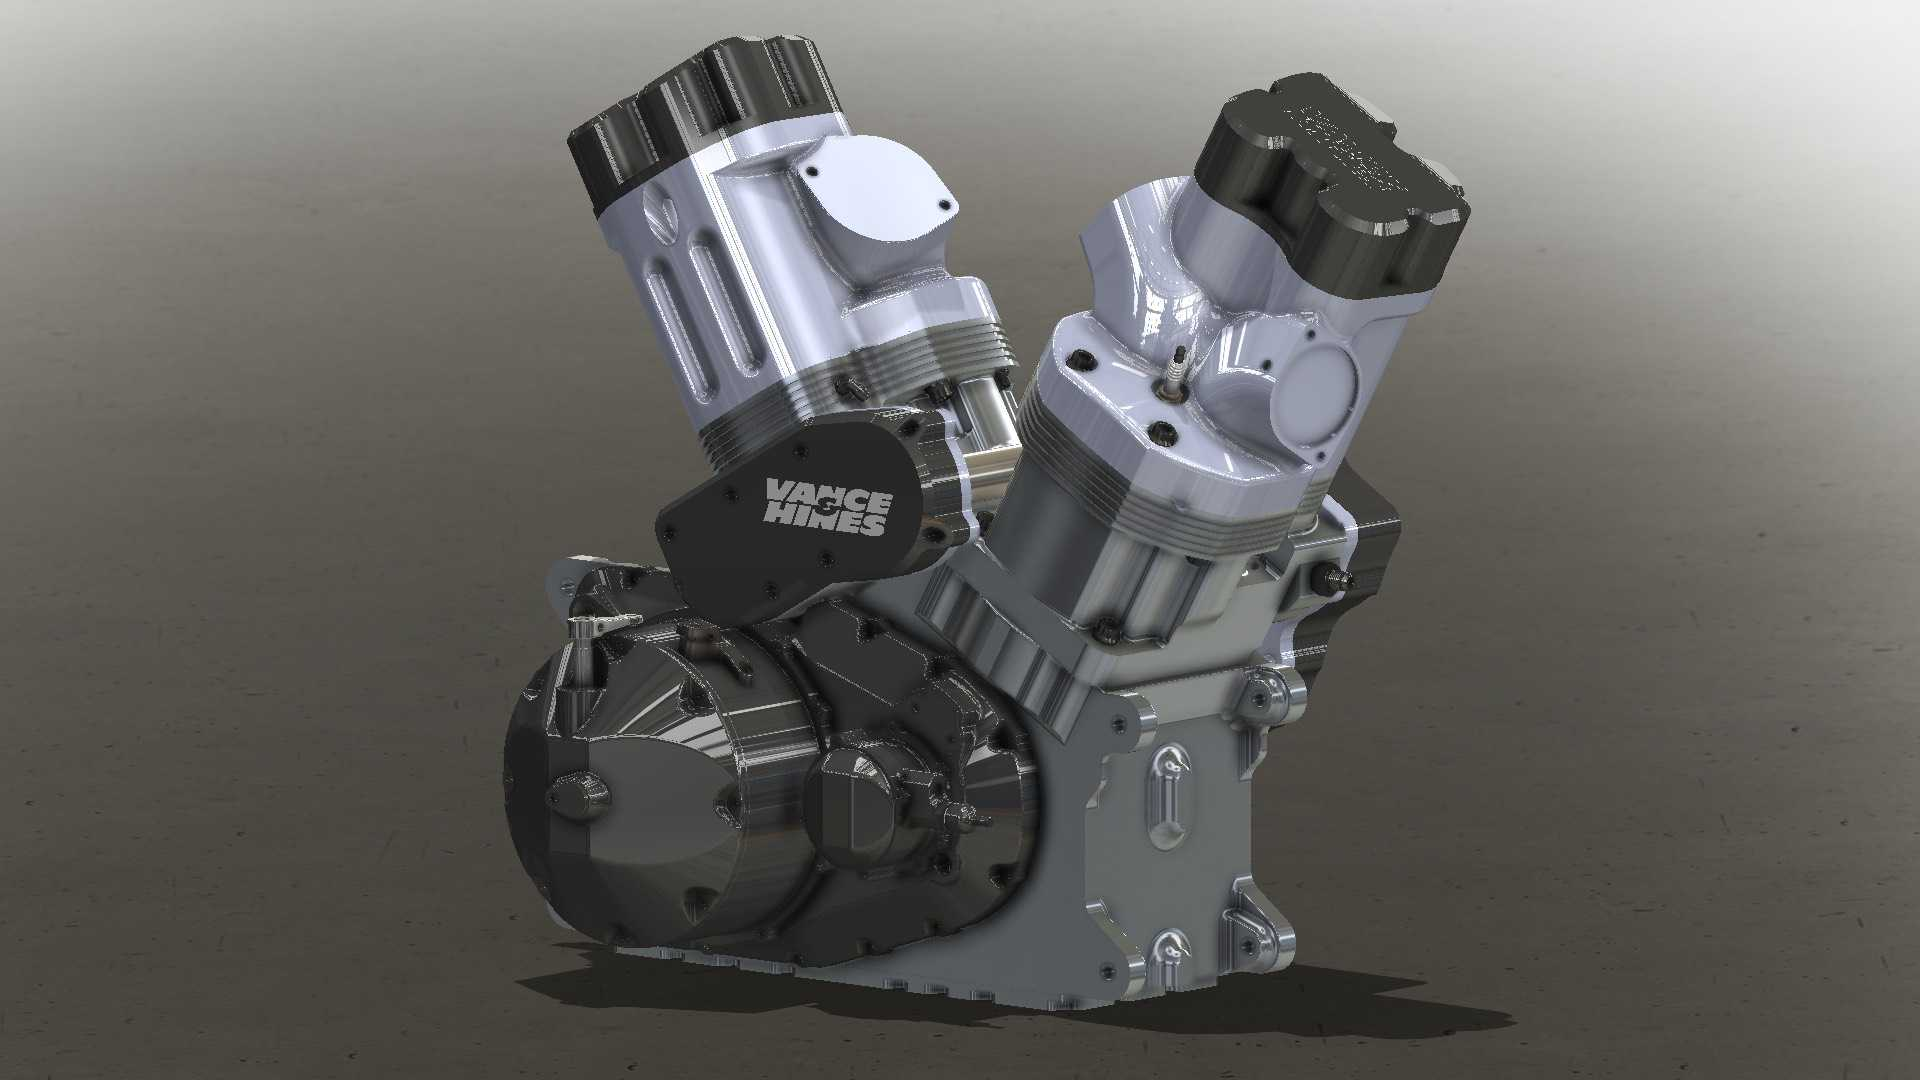 Vance & Hines Unveils 160 Cubic-Inch V-Twin For NHRA Racing